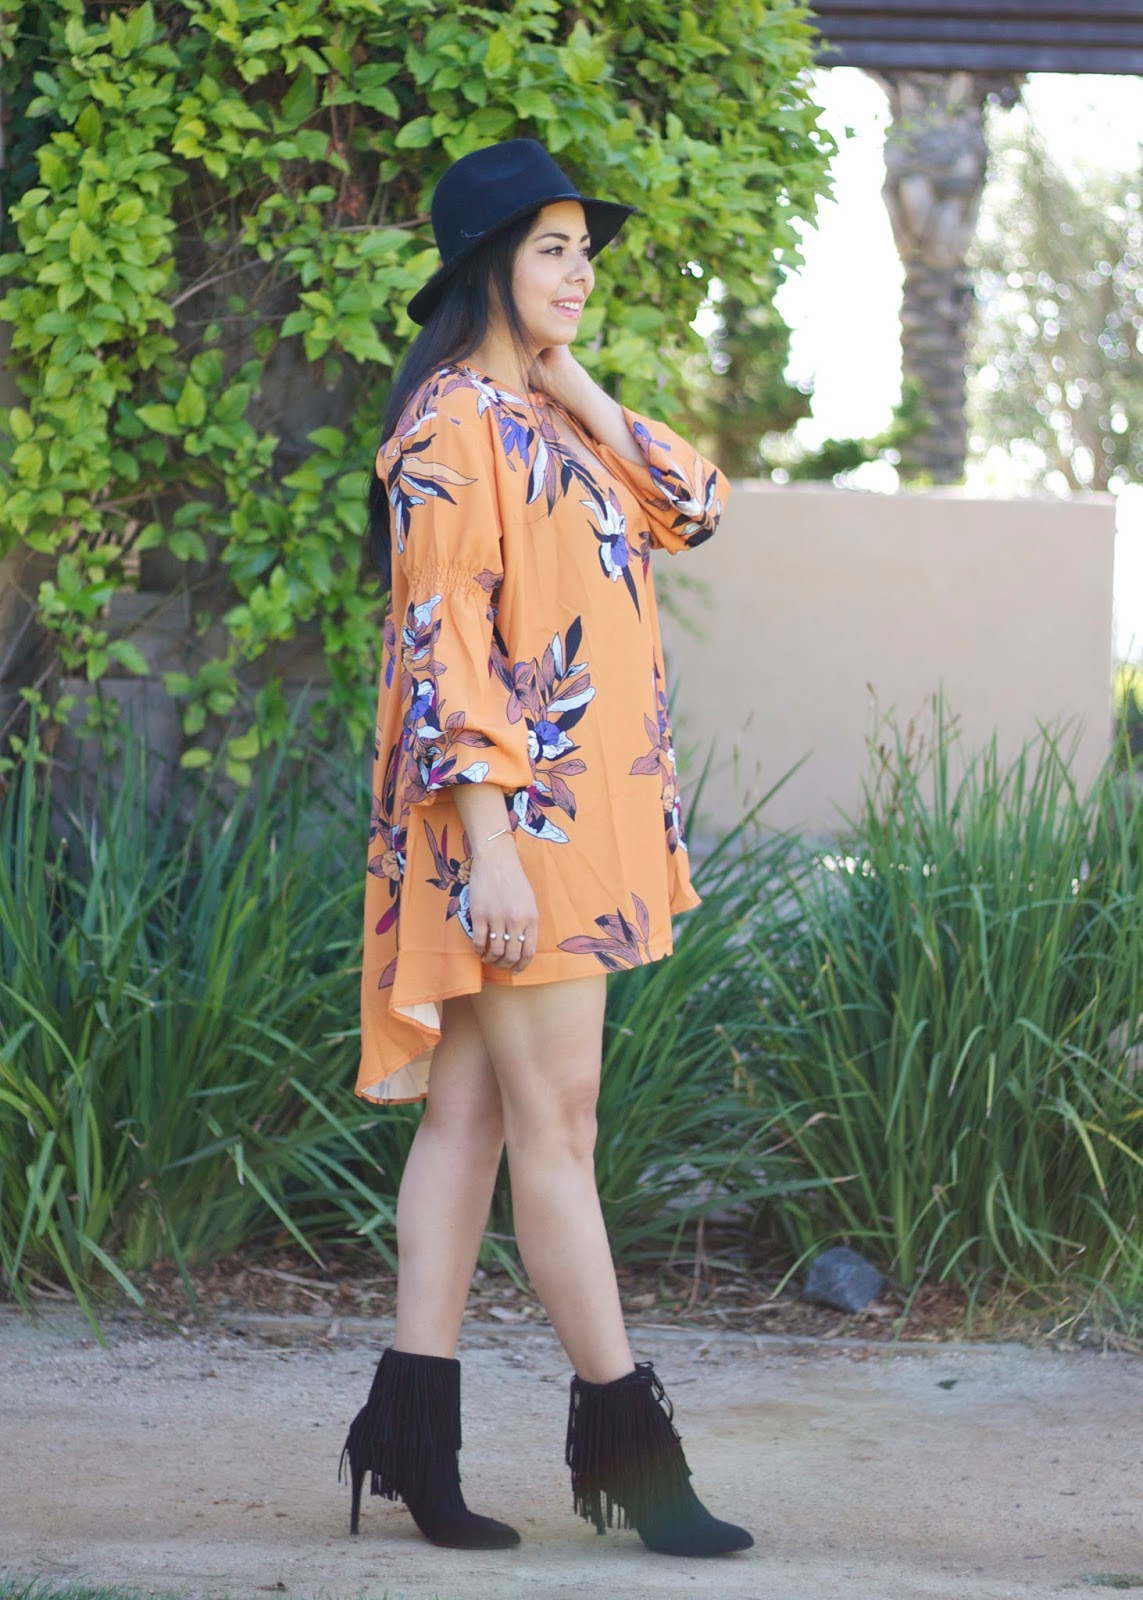 Fall 2015 Outfit, San Diego Fall Fashion 2015, San Diego fashion blogger, shein dress, fedora helt hat